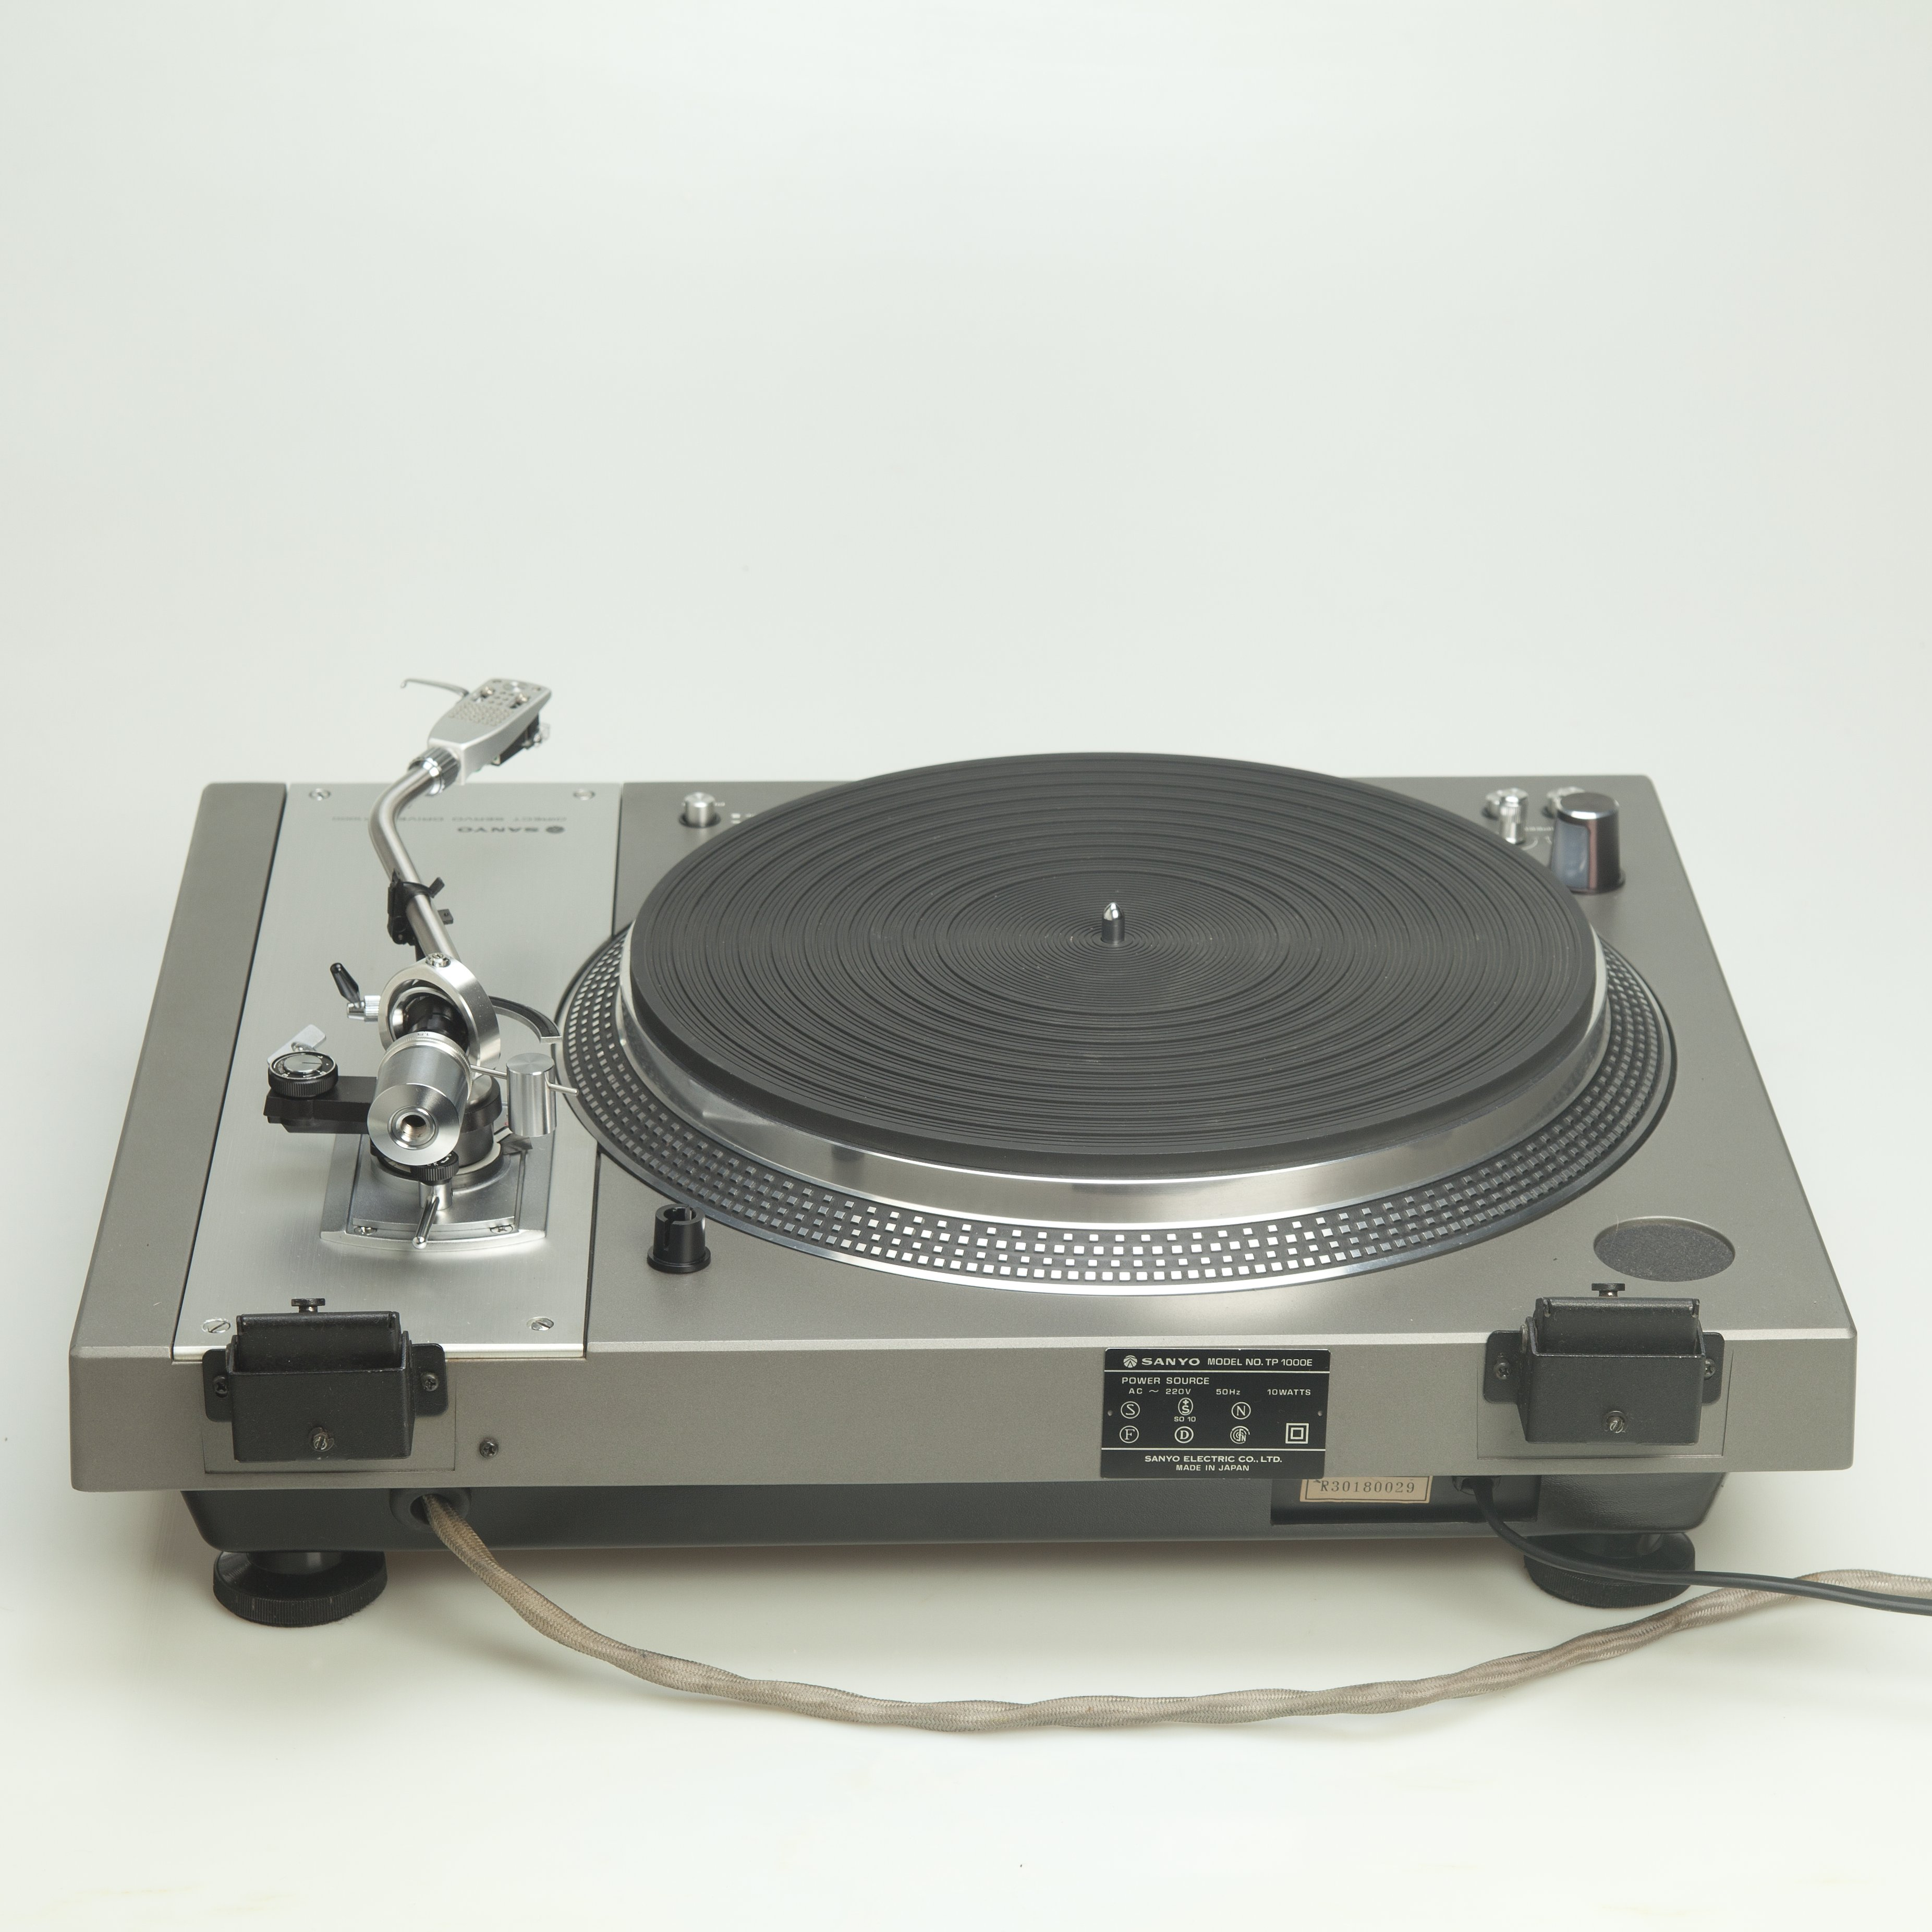 Sanyo Tp 1000 Turntable